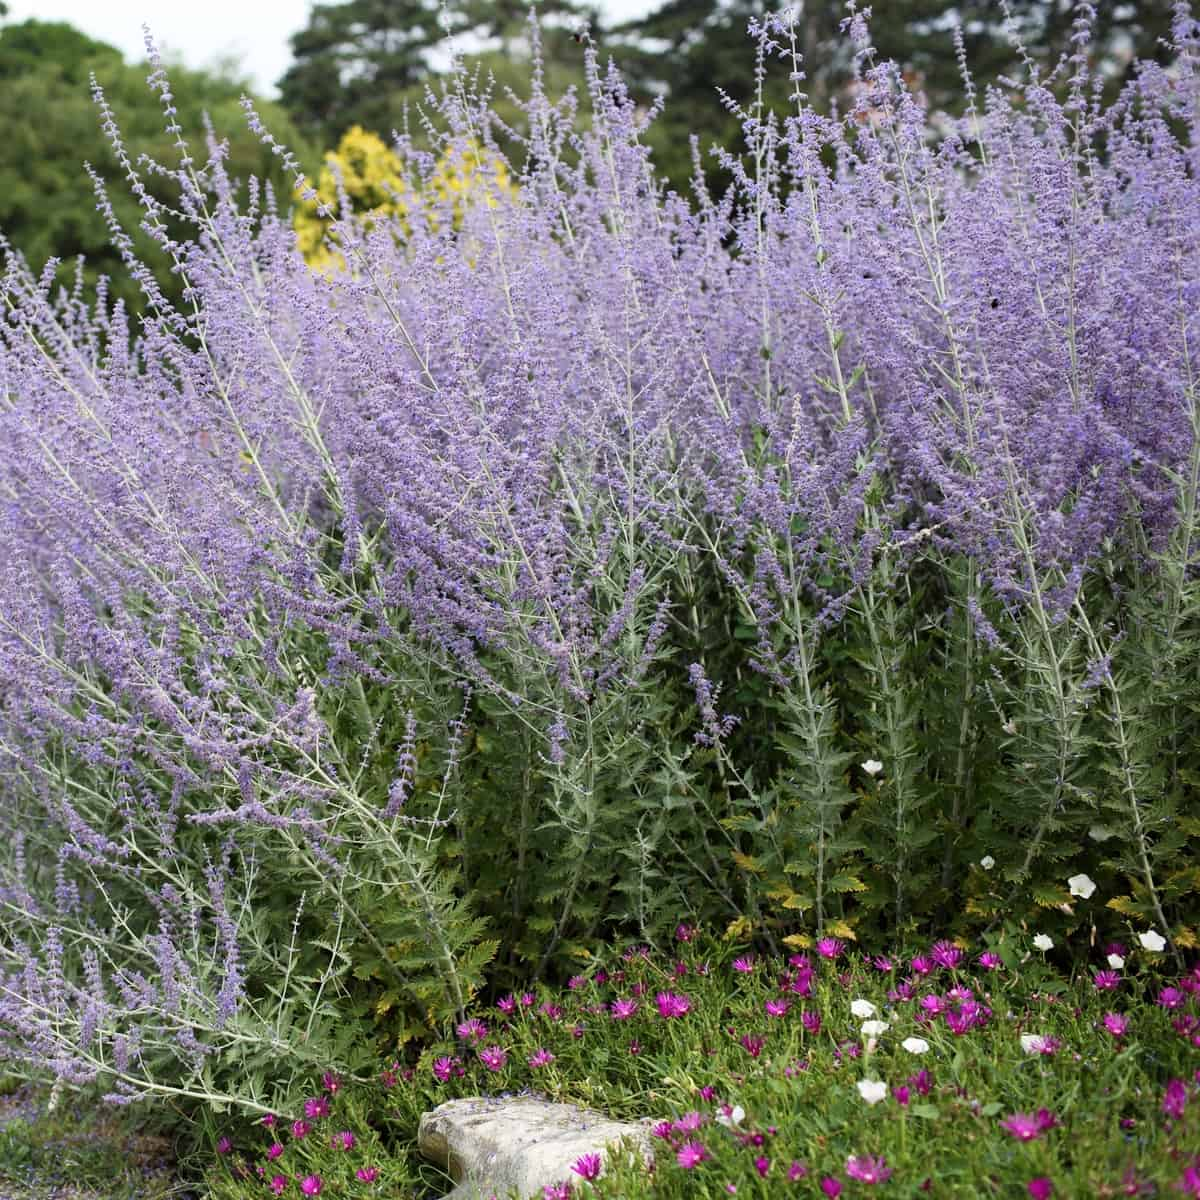 Russian sage is a perennial that blooms from spring to fall